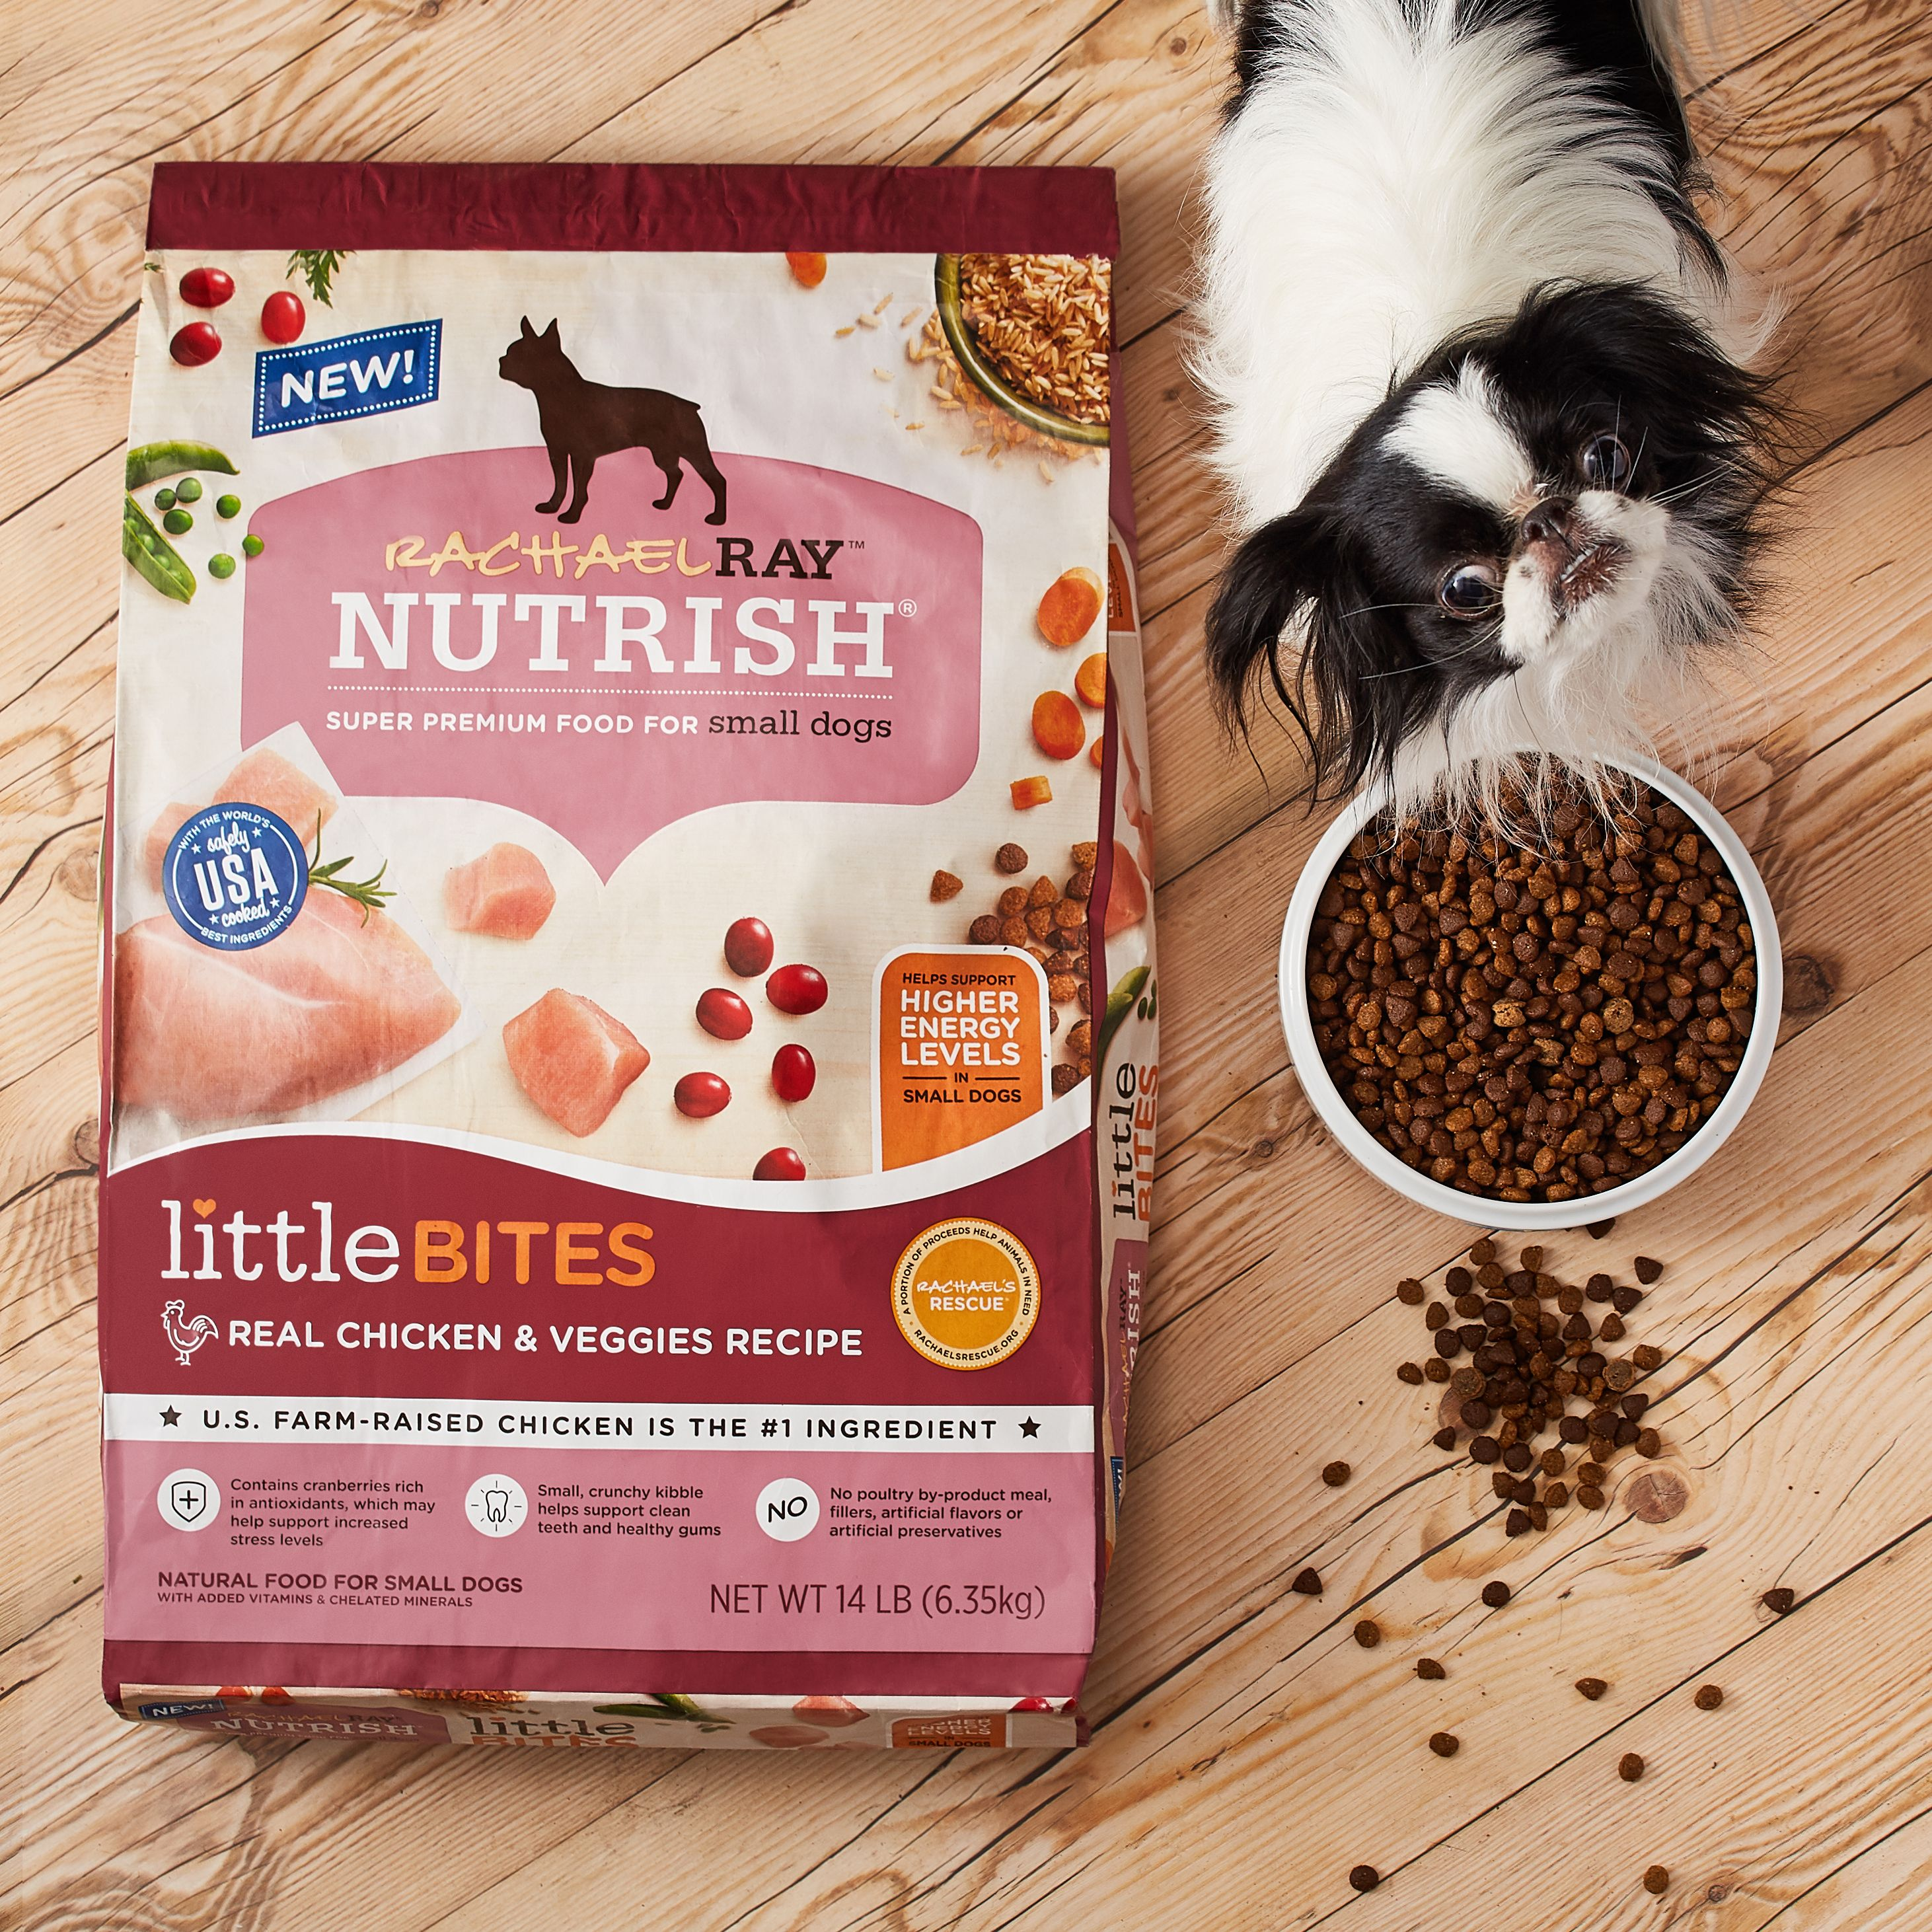 Rachael Ray Nutrish Little Bites Small Breed Natural Real Chicken Veggies Recipe Dry Dog Food Chewy Dry Dog Food Dog Food Recipes Puppy Food